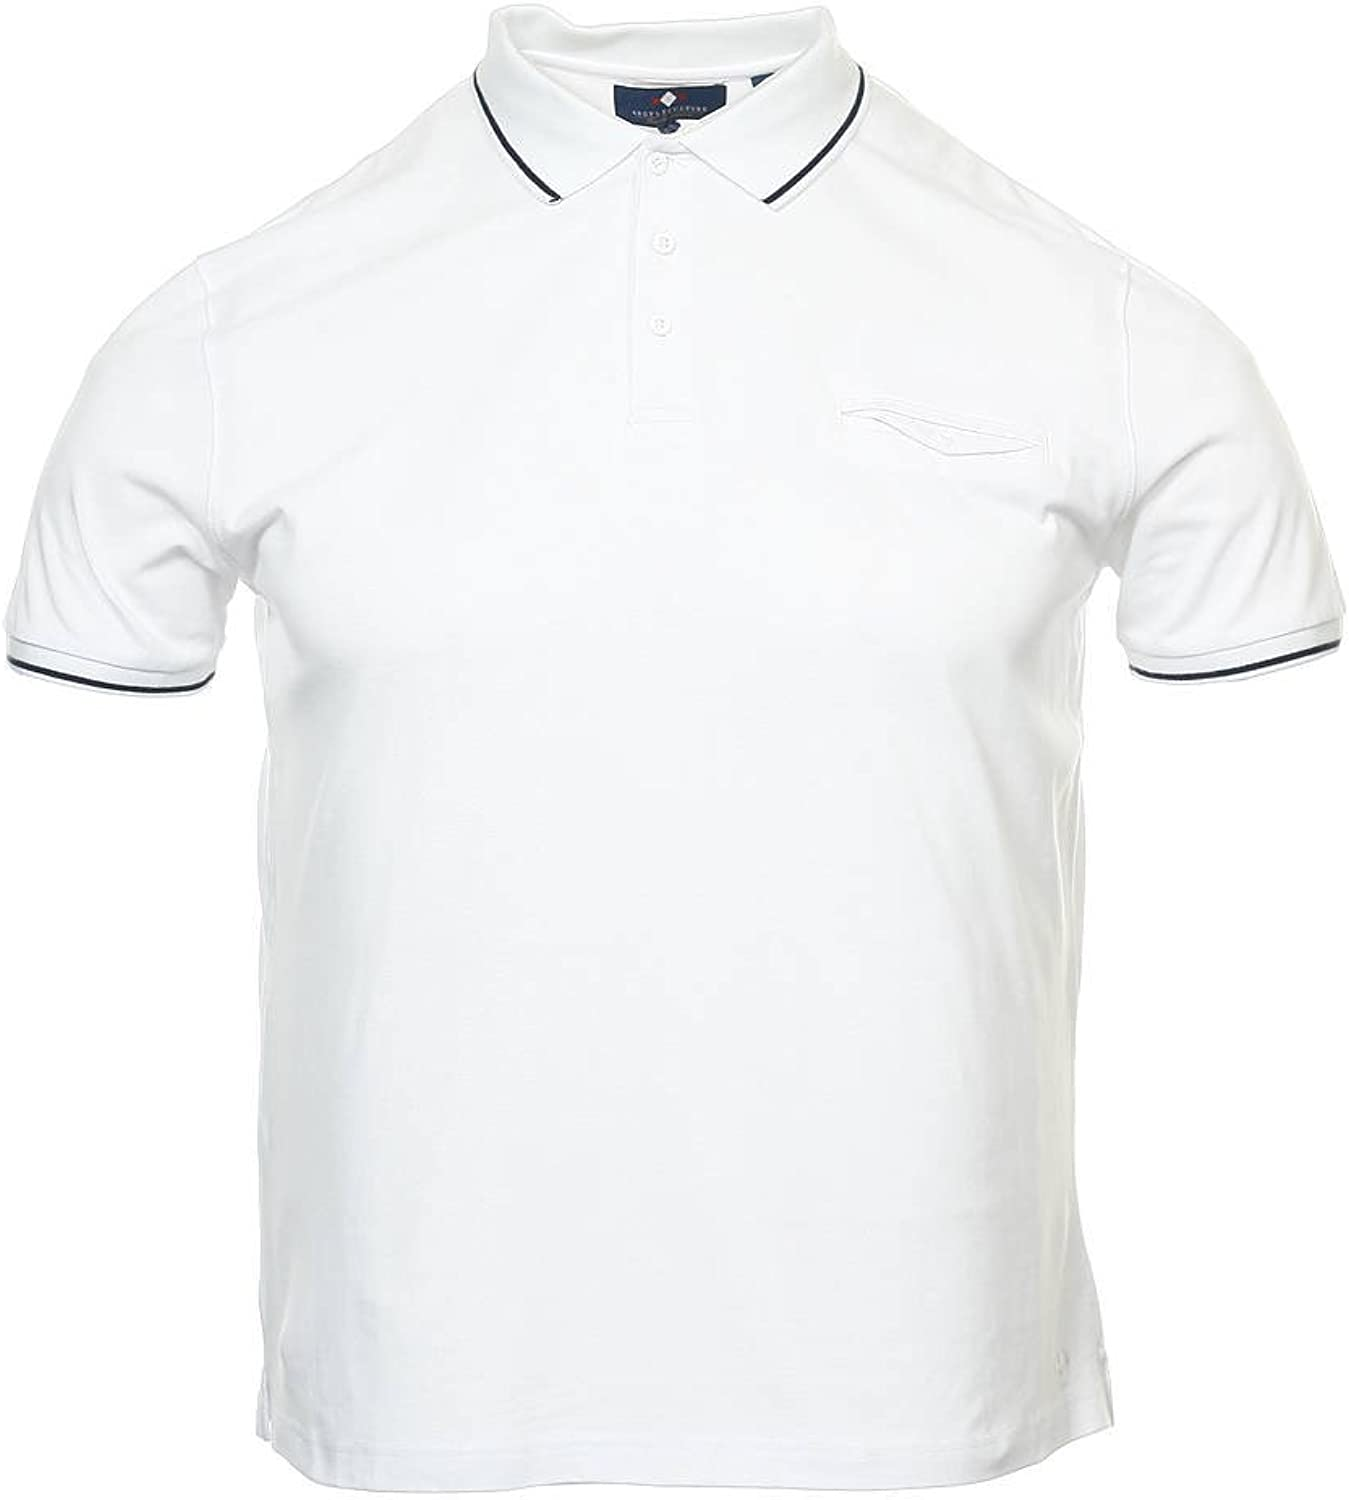 Russell Classic Cotton Pique Polo Shirt Mens Easy Fit Classic Style Tshirt Top